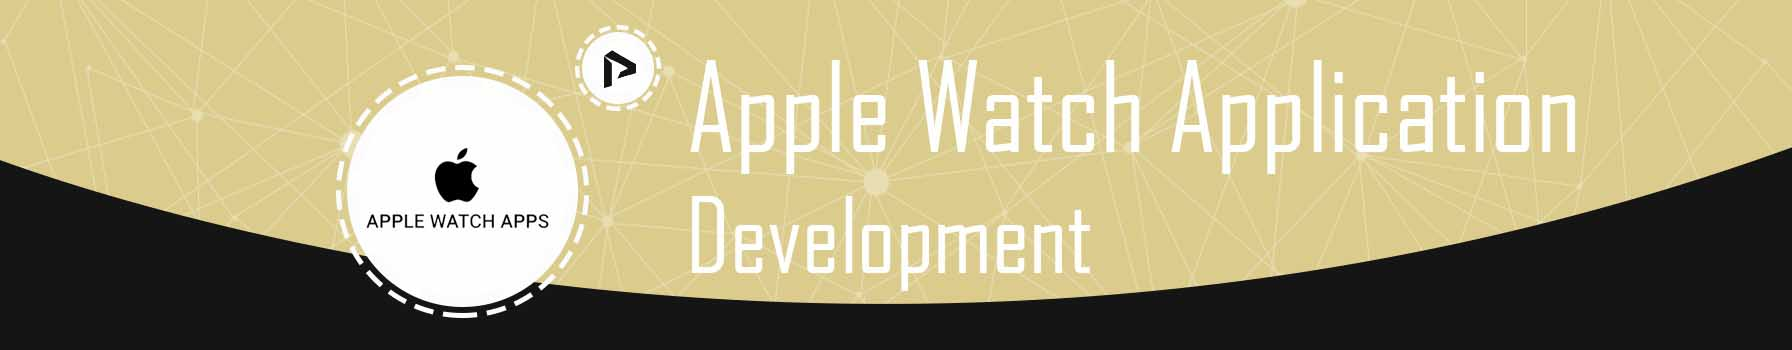 apple-watch-application-development.jpg